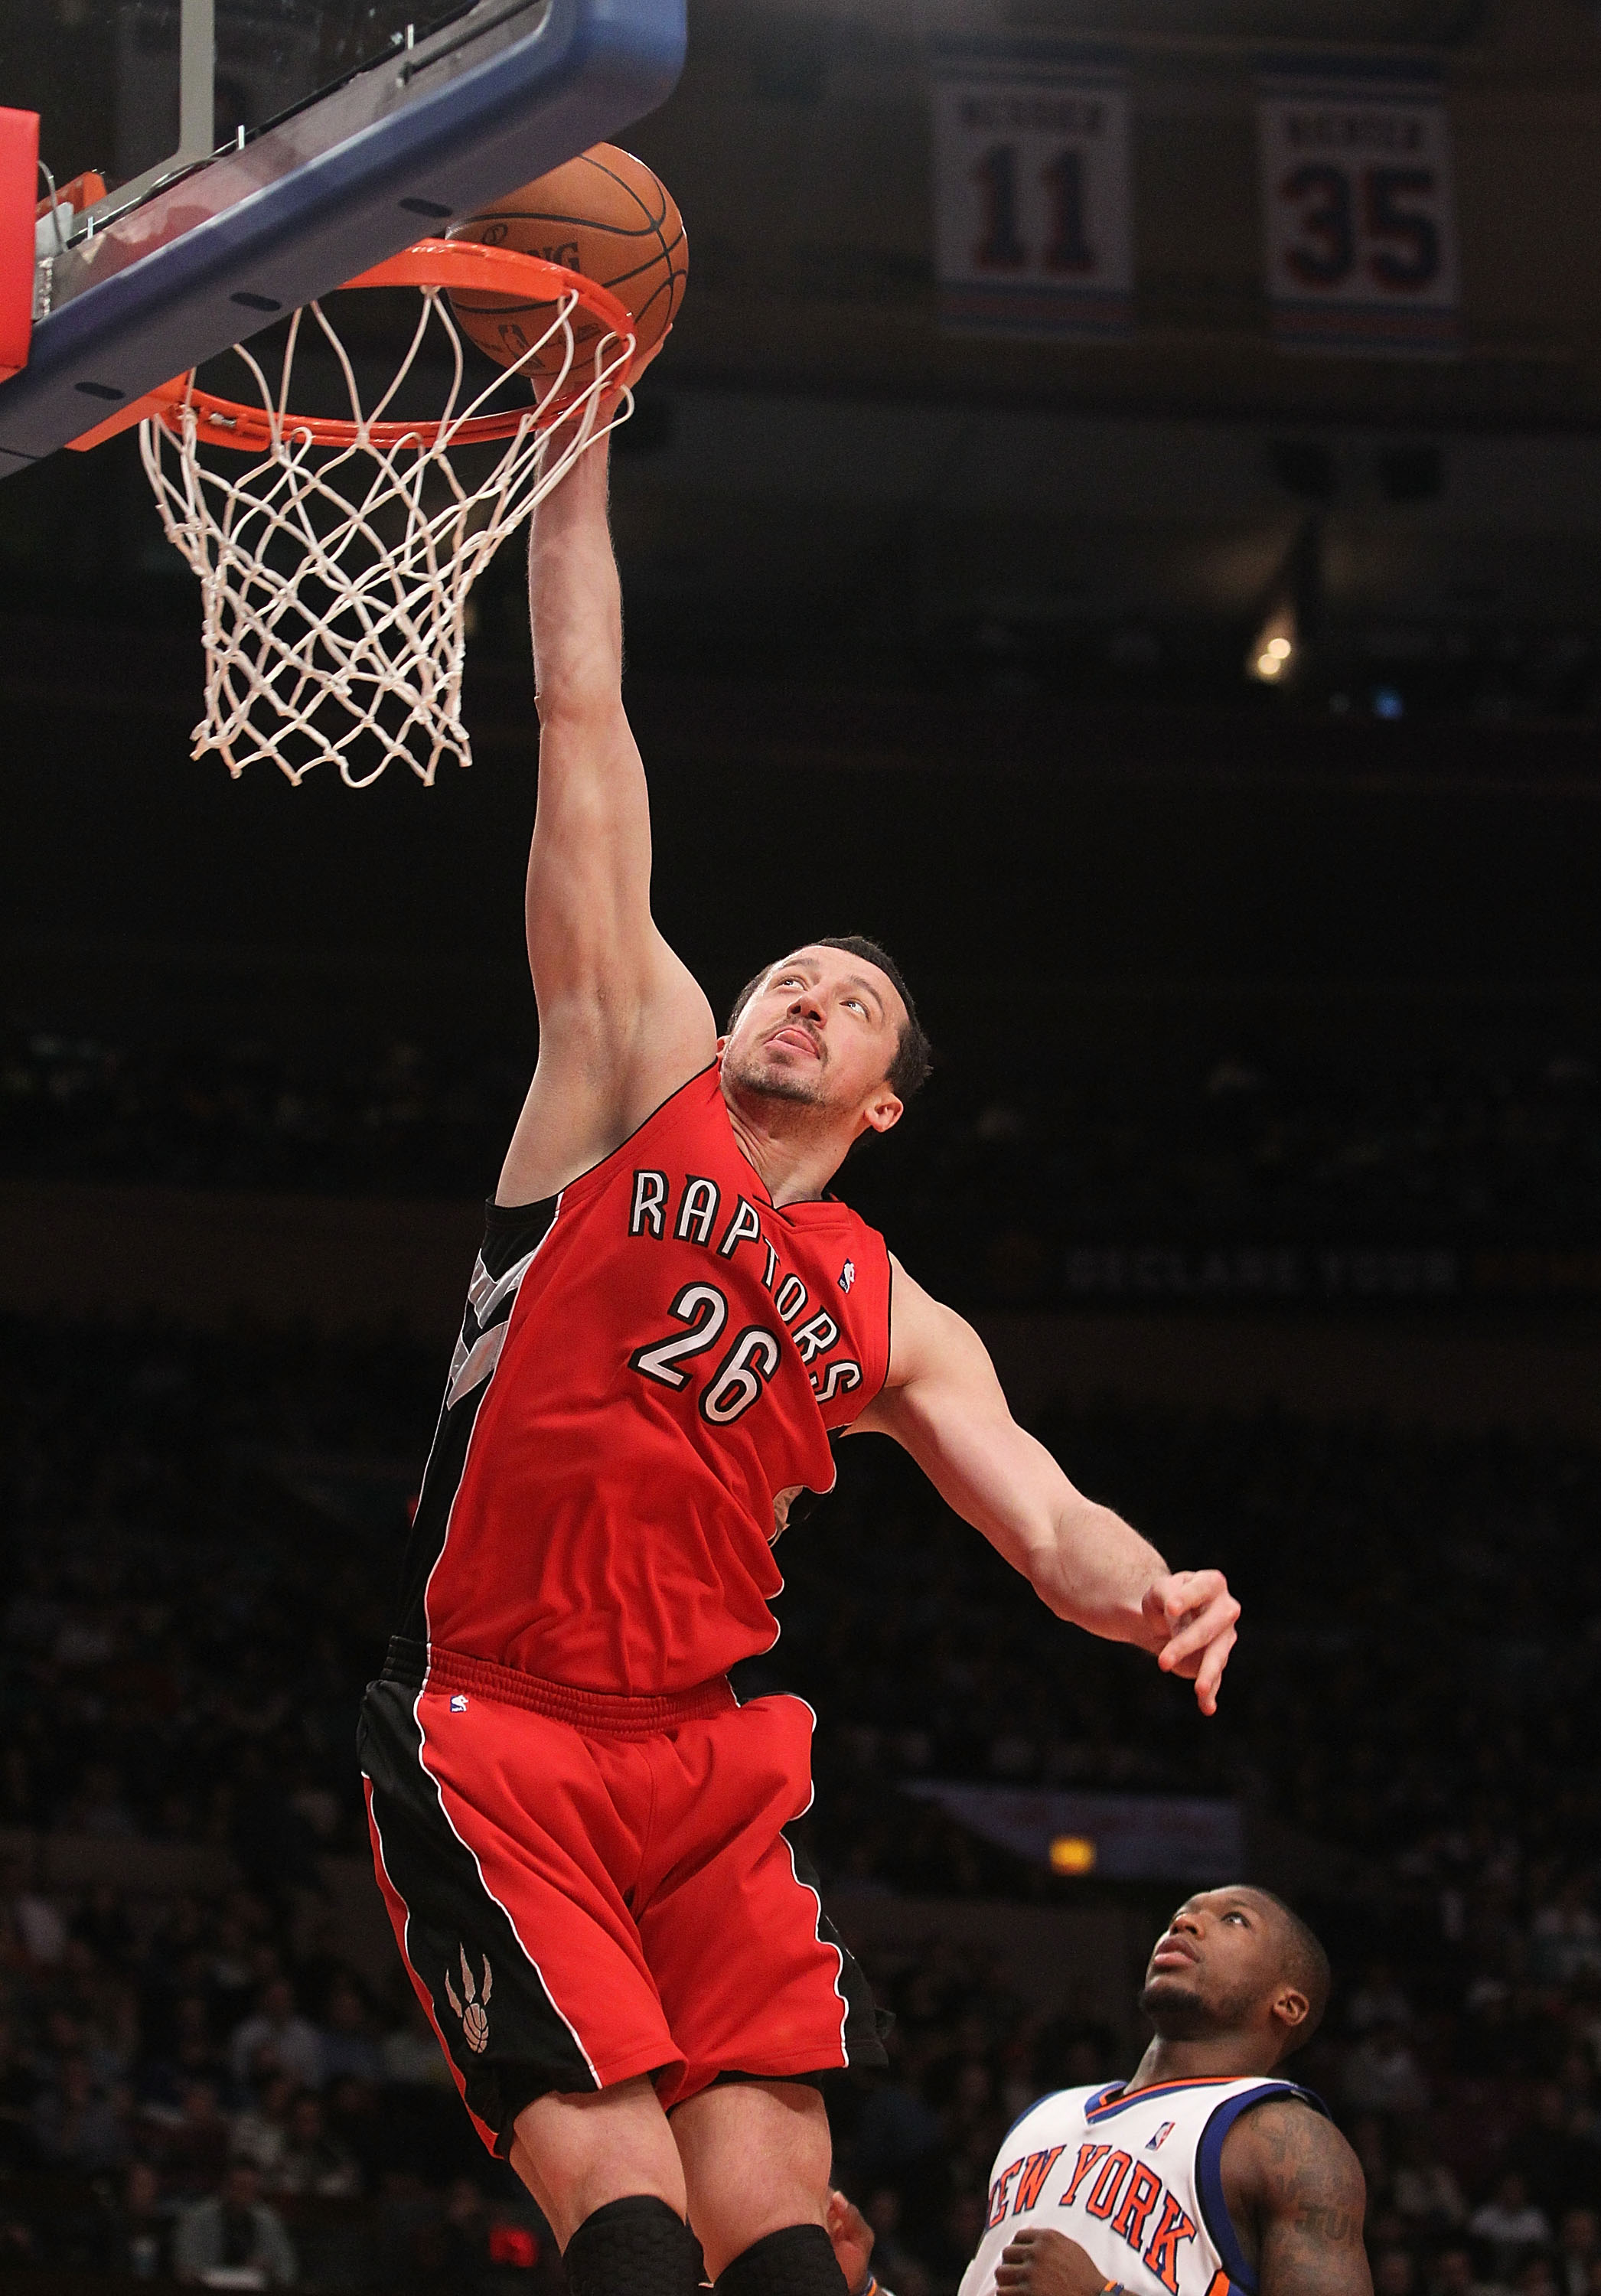 NEW YORK - JANUARY 28:  Hedo Turkoglu #26 of the Toronto Raptors dunks the ball up against the New York Knicks at Madison Square Garden on January 28, 2010 in New York, New York. NOTE TO USER: User expressly acknowledges and agrees that, by downloading an